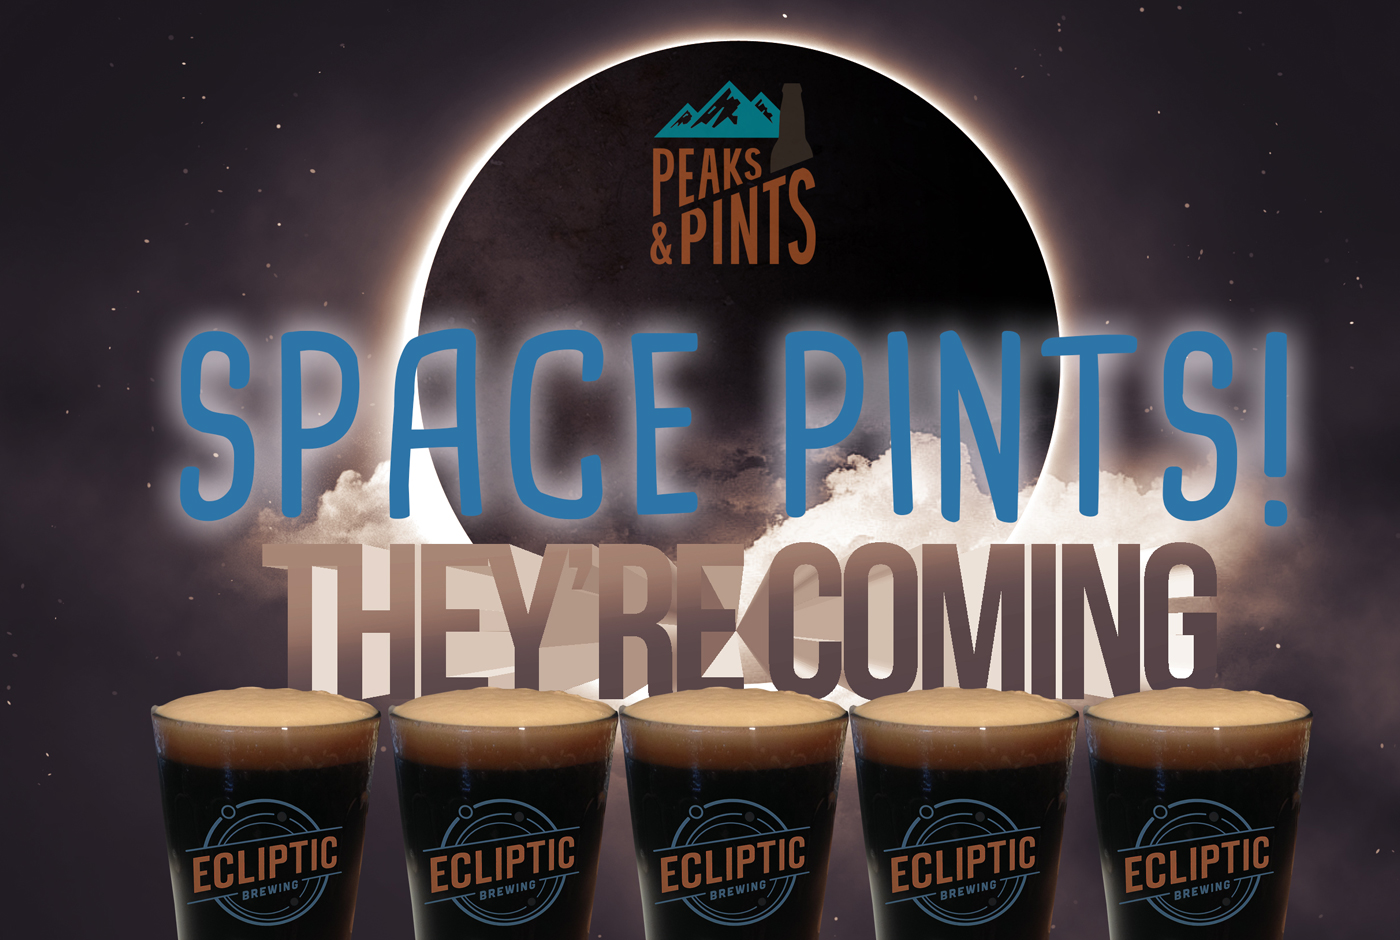 Eclipse-and-Ecliptic-Peaks-and-Space-Pints-calendar